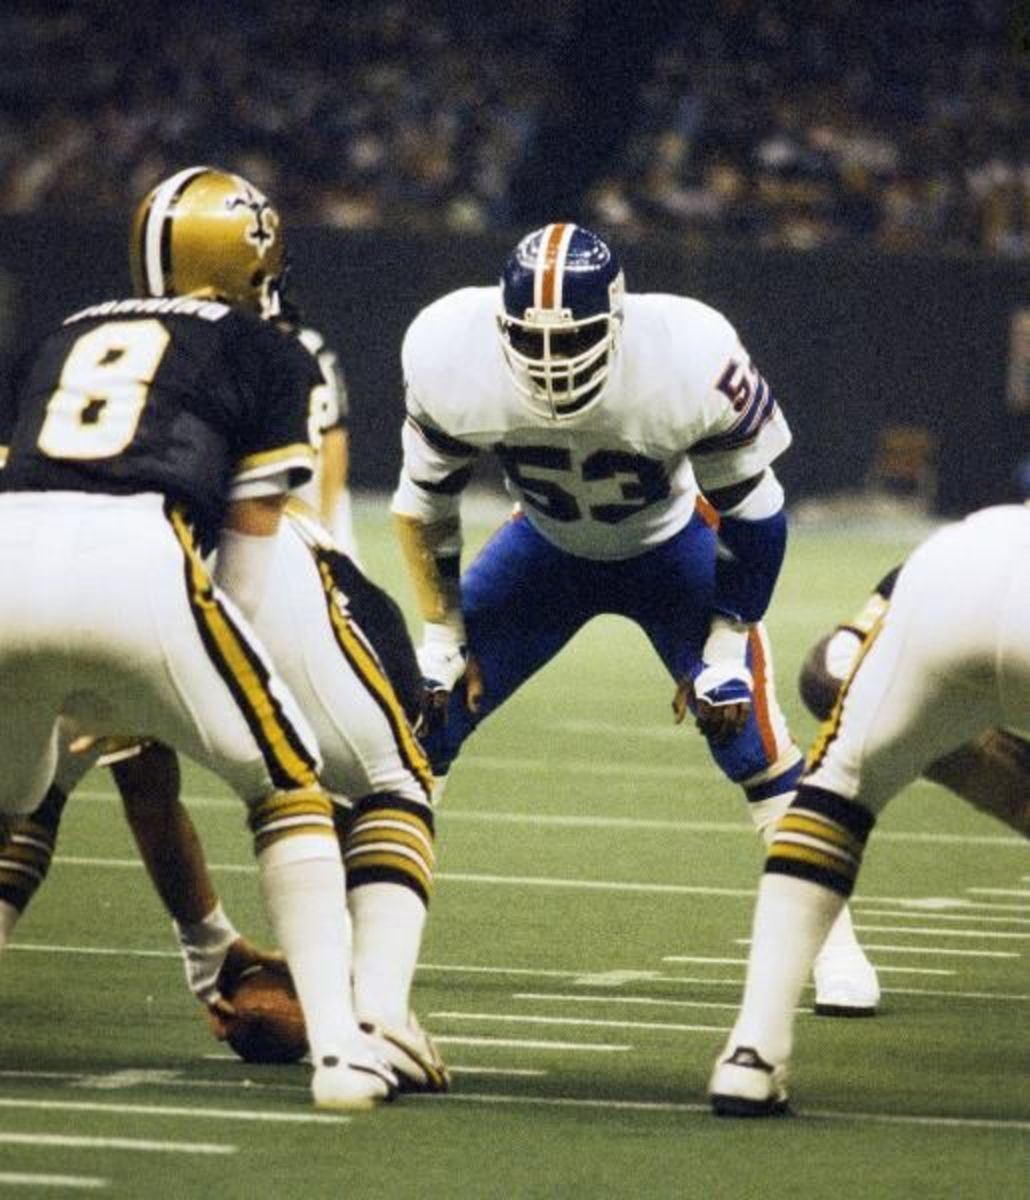 New York Giants LB Harry Carson (53) eyes up New Orleans Saints QB Archie Manning (8) during a 1978 game. Credit: nfl.com